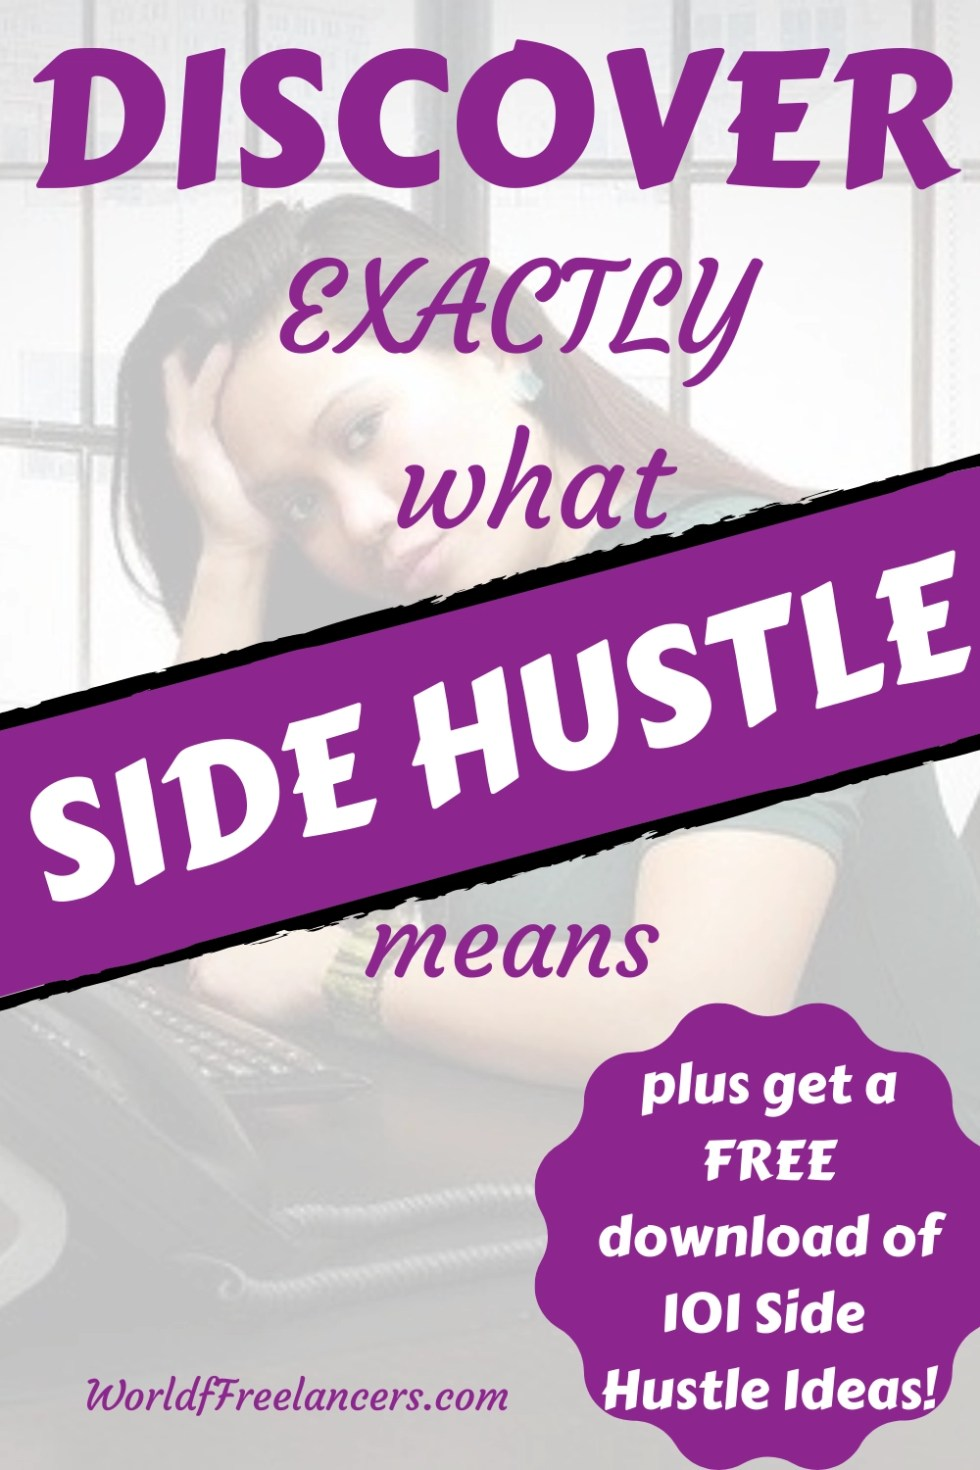 Woman with long, dark hair sitting at desk with computer, with her head in hand with purple, black and white text saying discover exactly what side hustle means